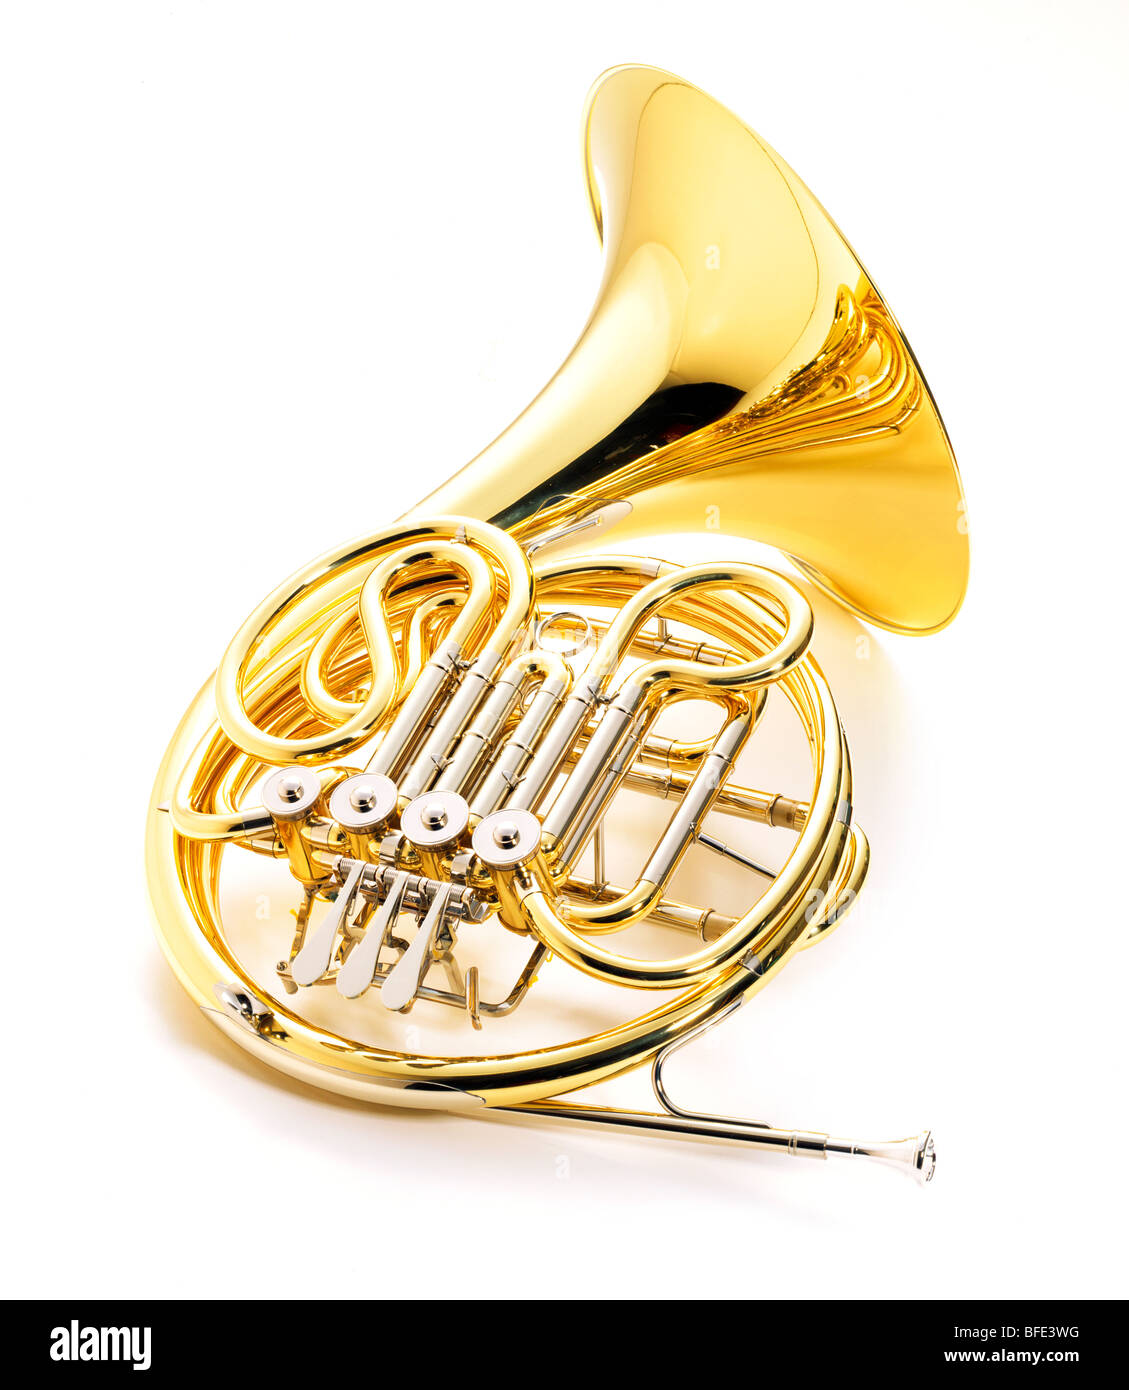 Shiny french horn on a white background - Stock Image